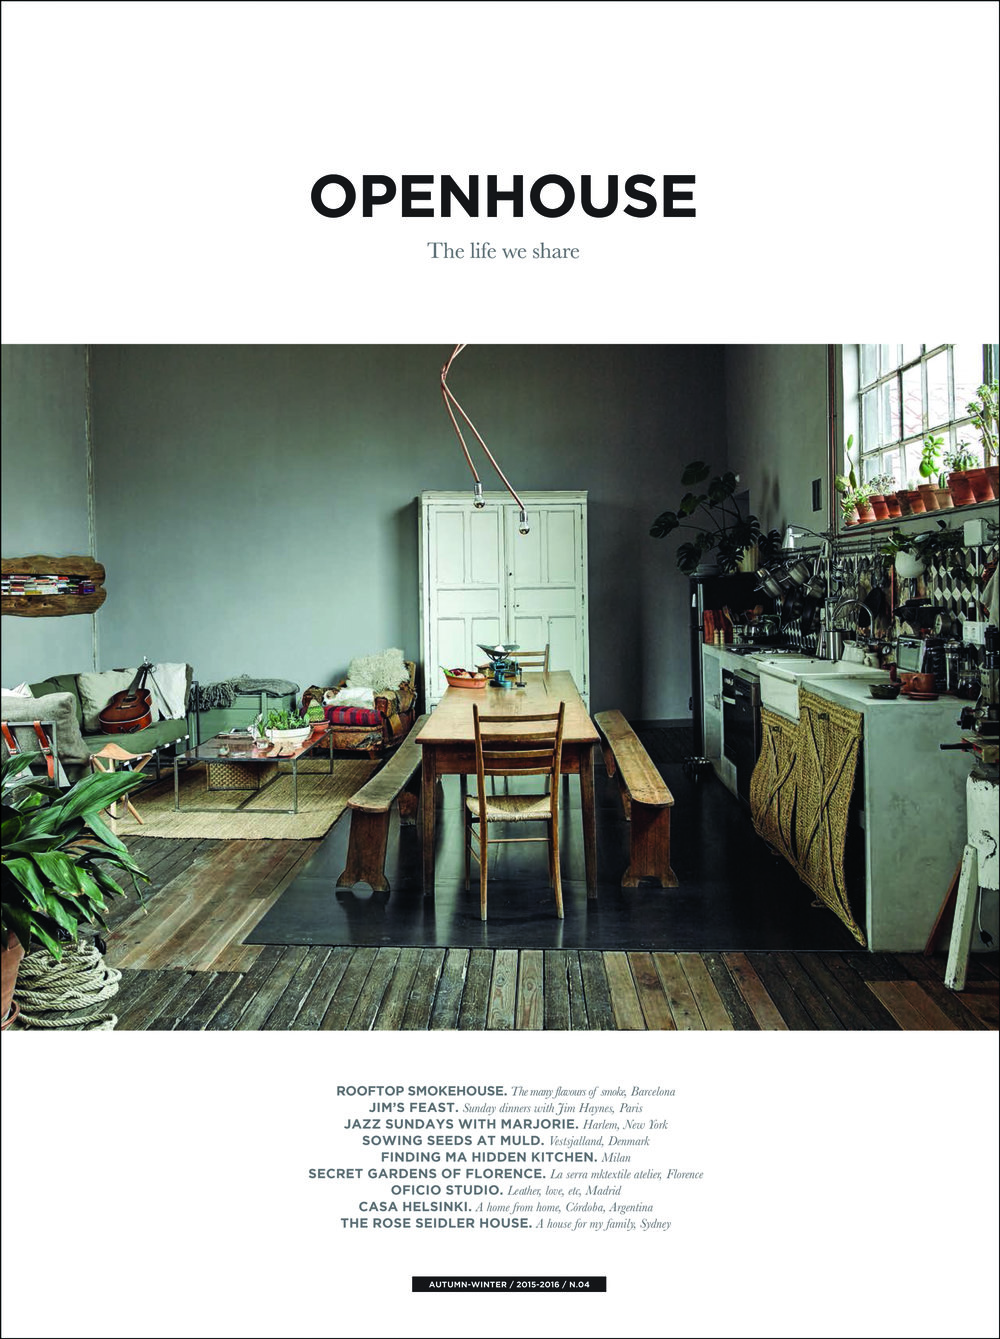 OPENHOUSE MAGAZINE, Issue 4, October 2015.